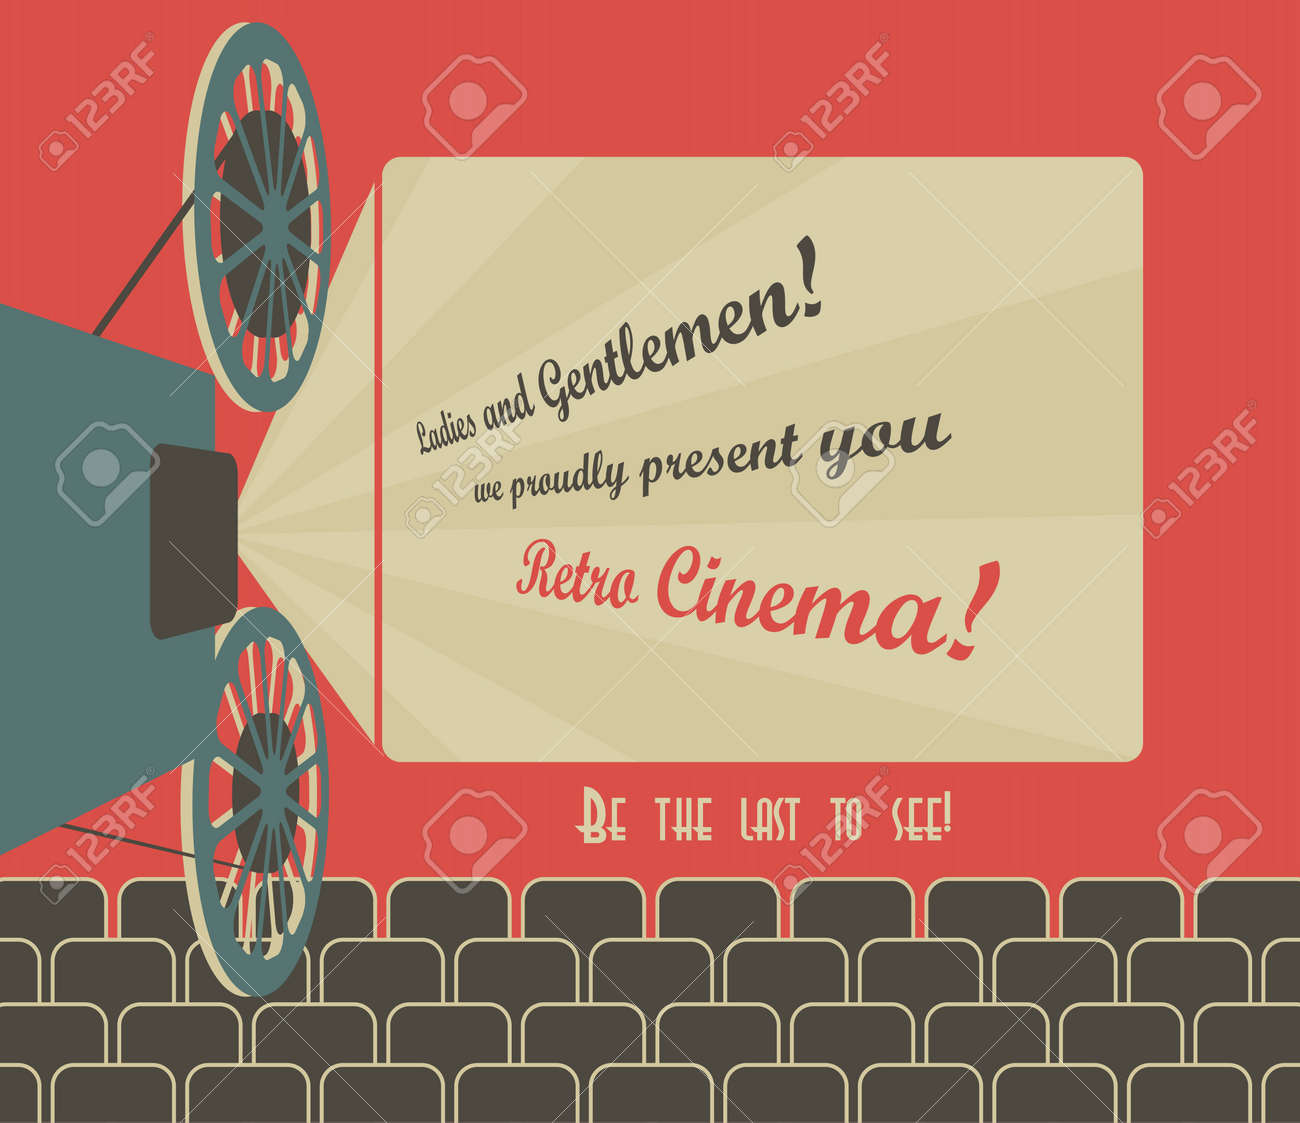 Old style poster for a retro cinema with a placeholder for your text Movie hall with a screen and seats Vector image - 16169241